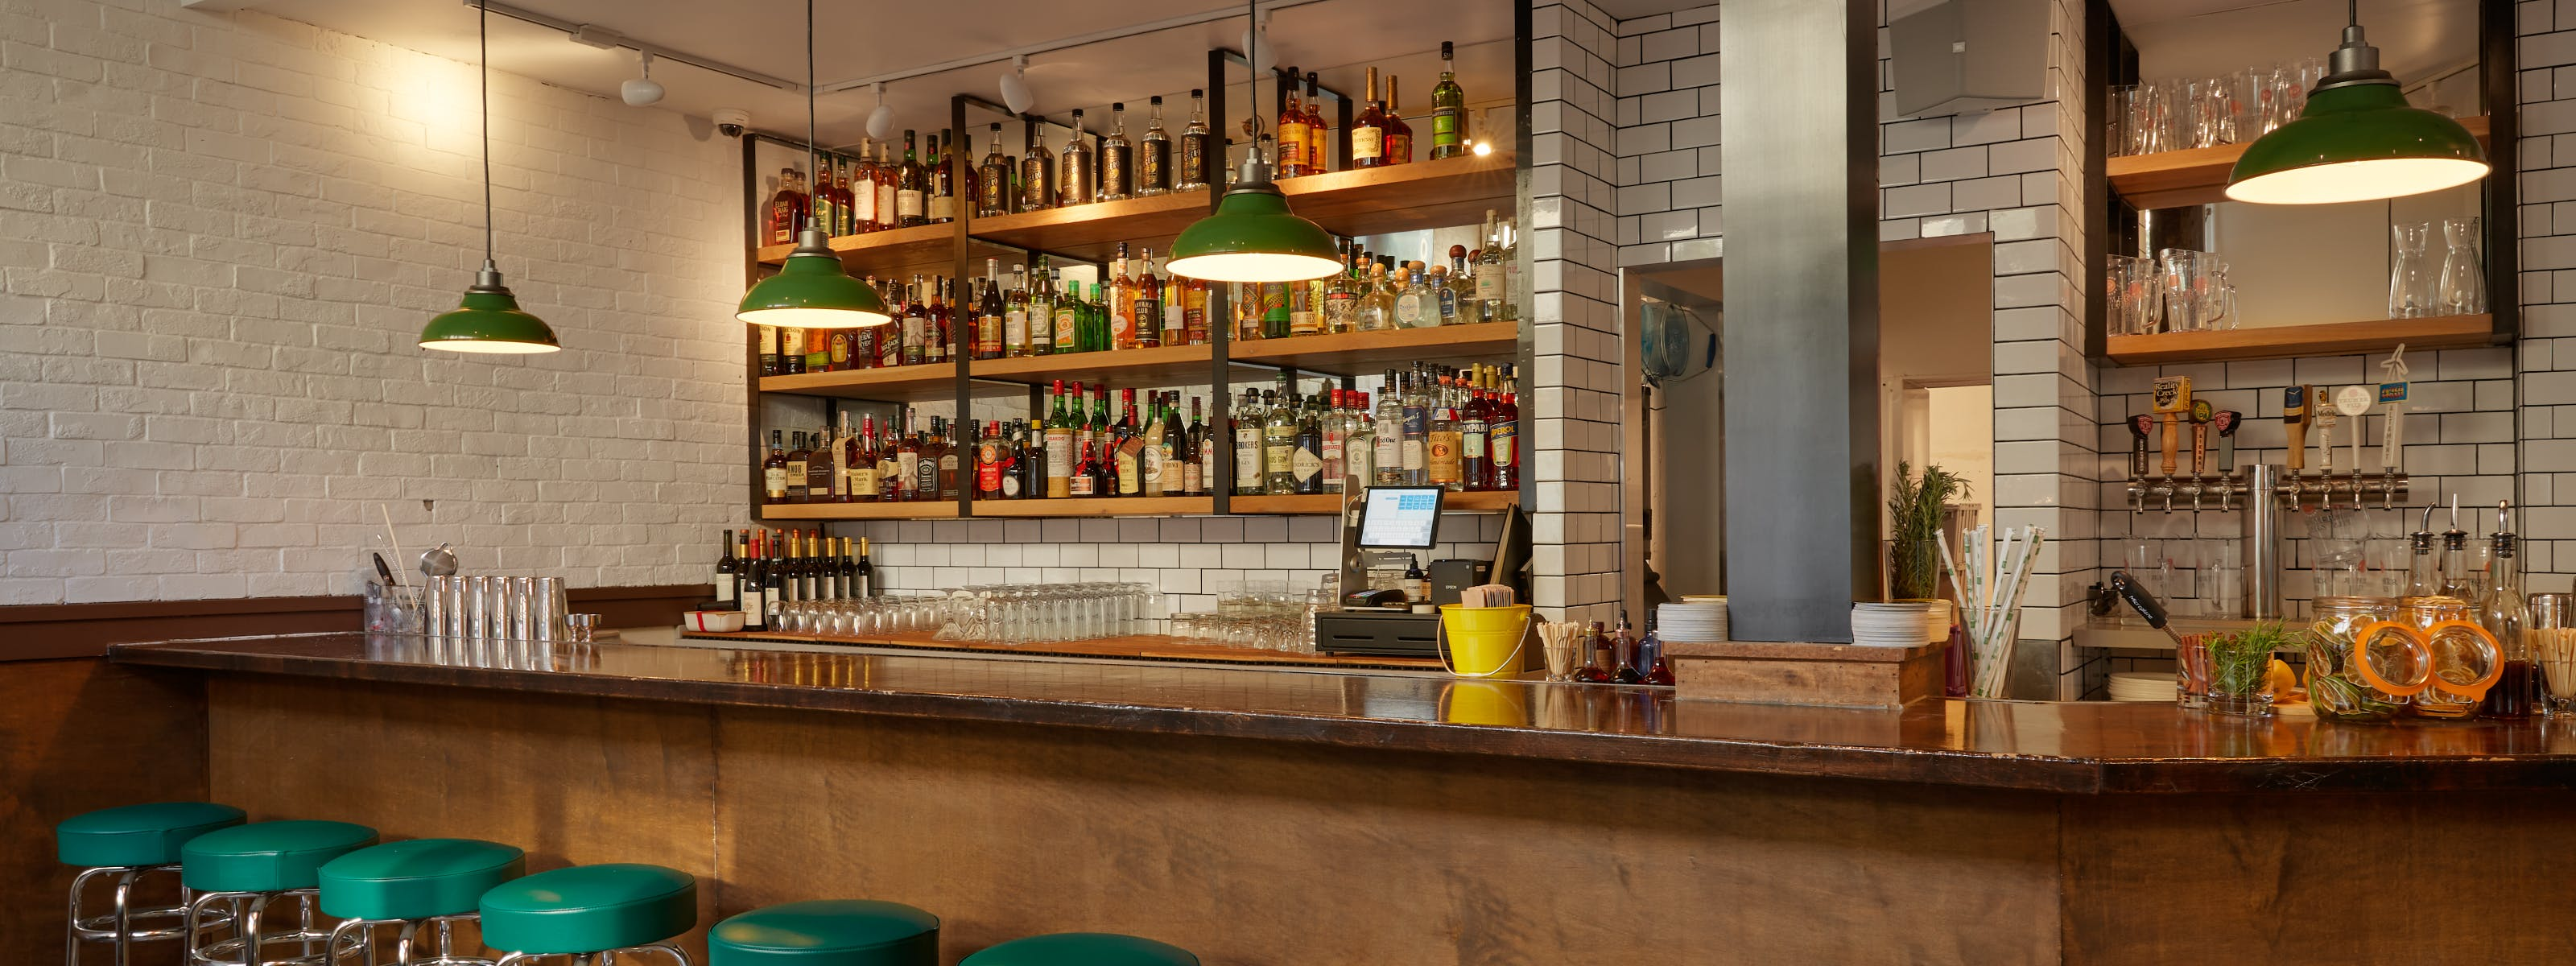 6 New Things To Do & Eat In San Francisco This Week - San Francisco - The Infatuation